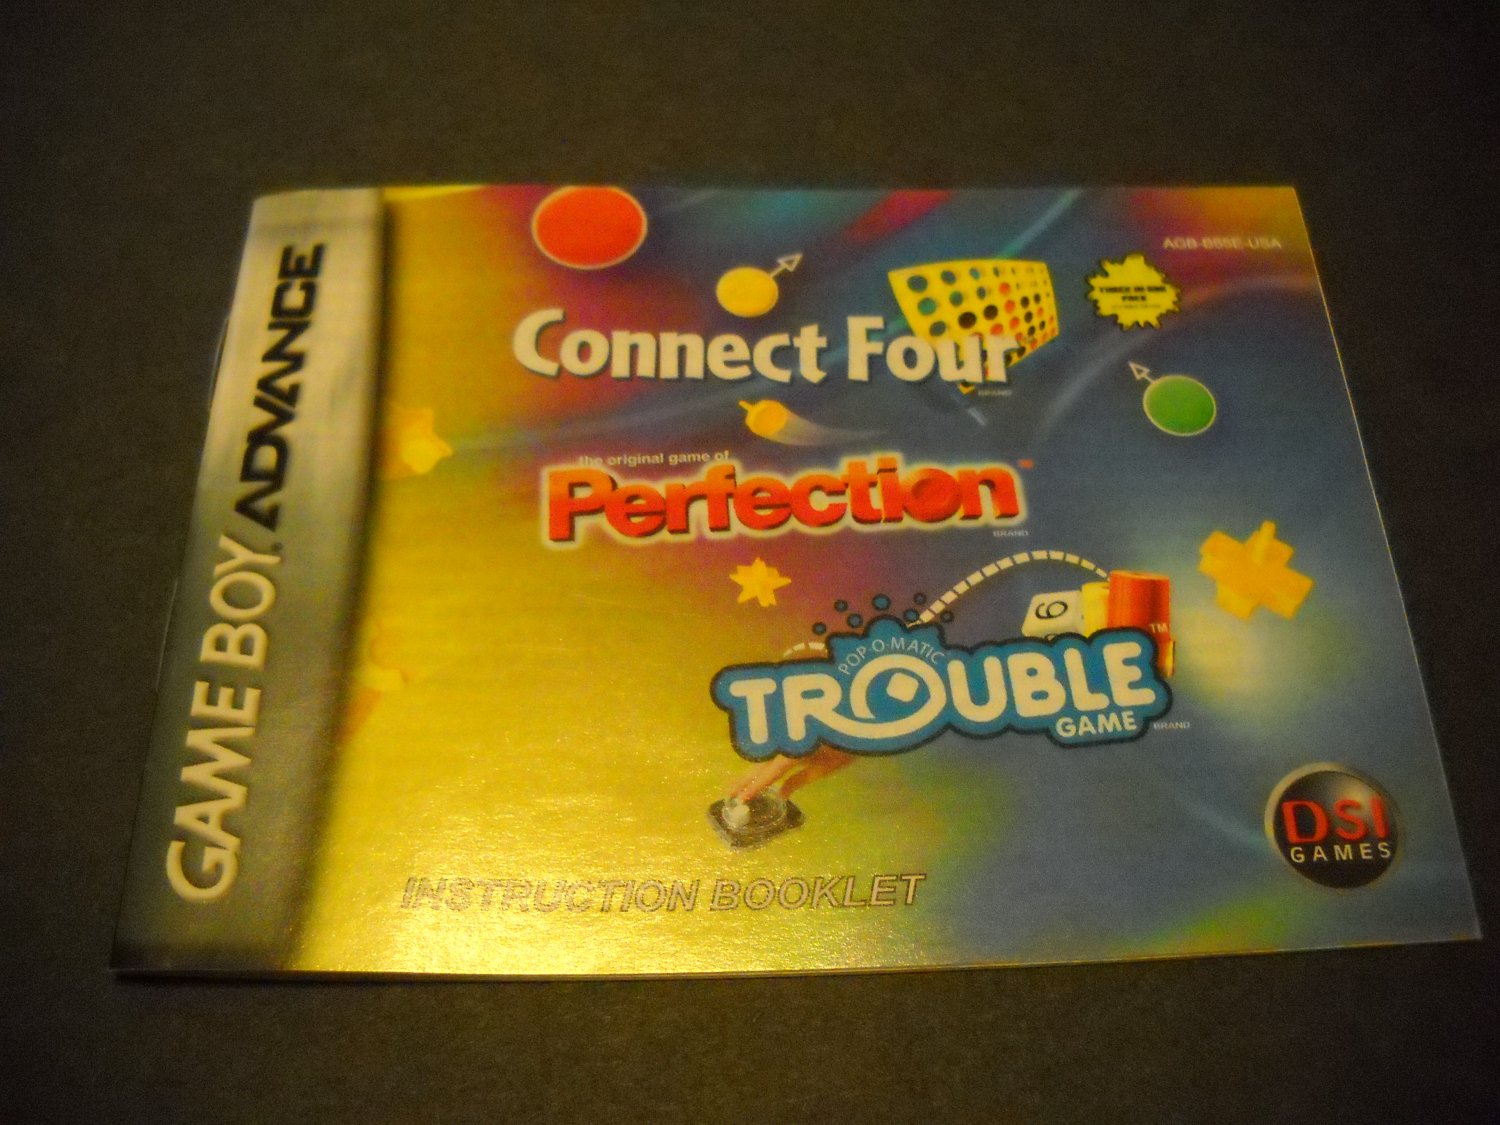 Manual ONLY ~  for Connect Four / Perfection / Trouble  Gameboy Advance